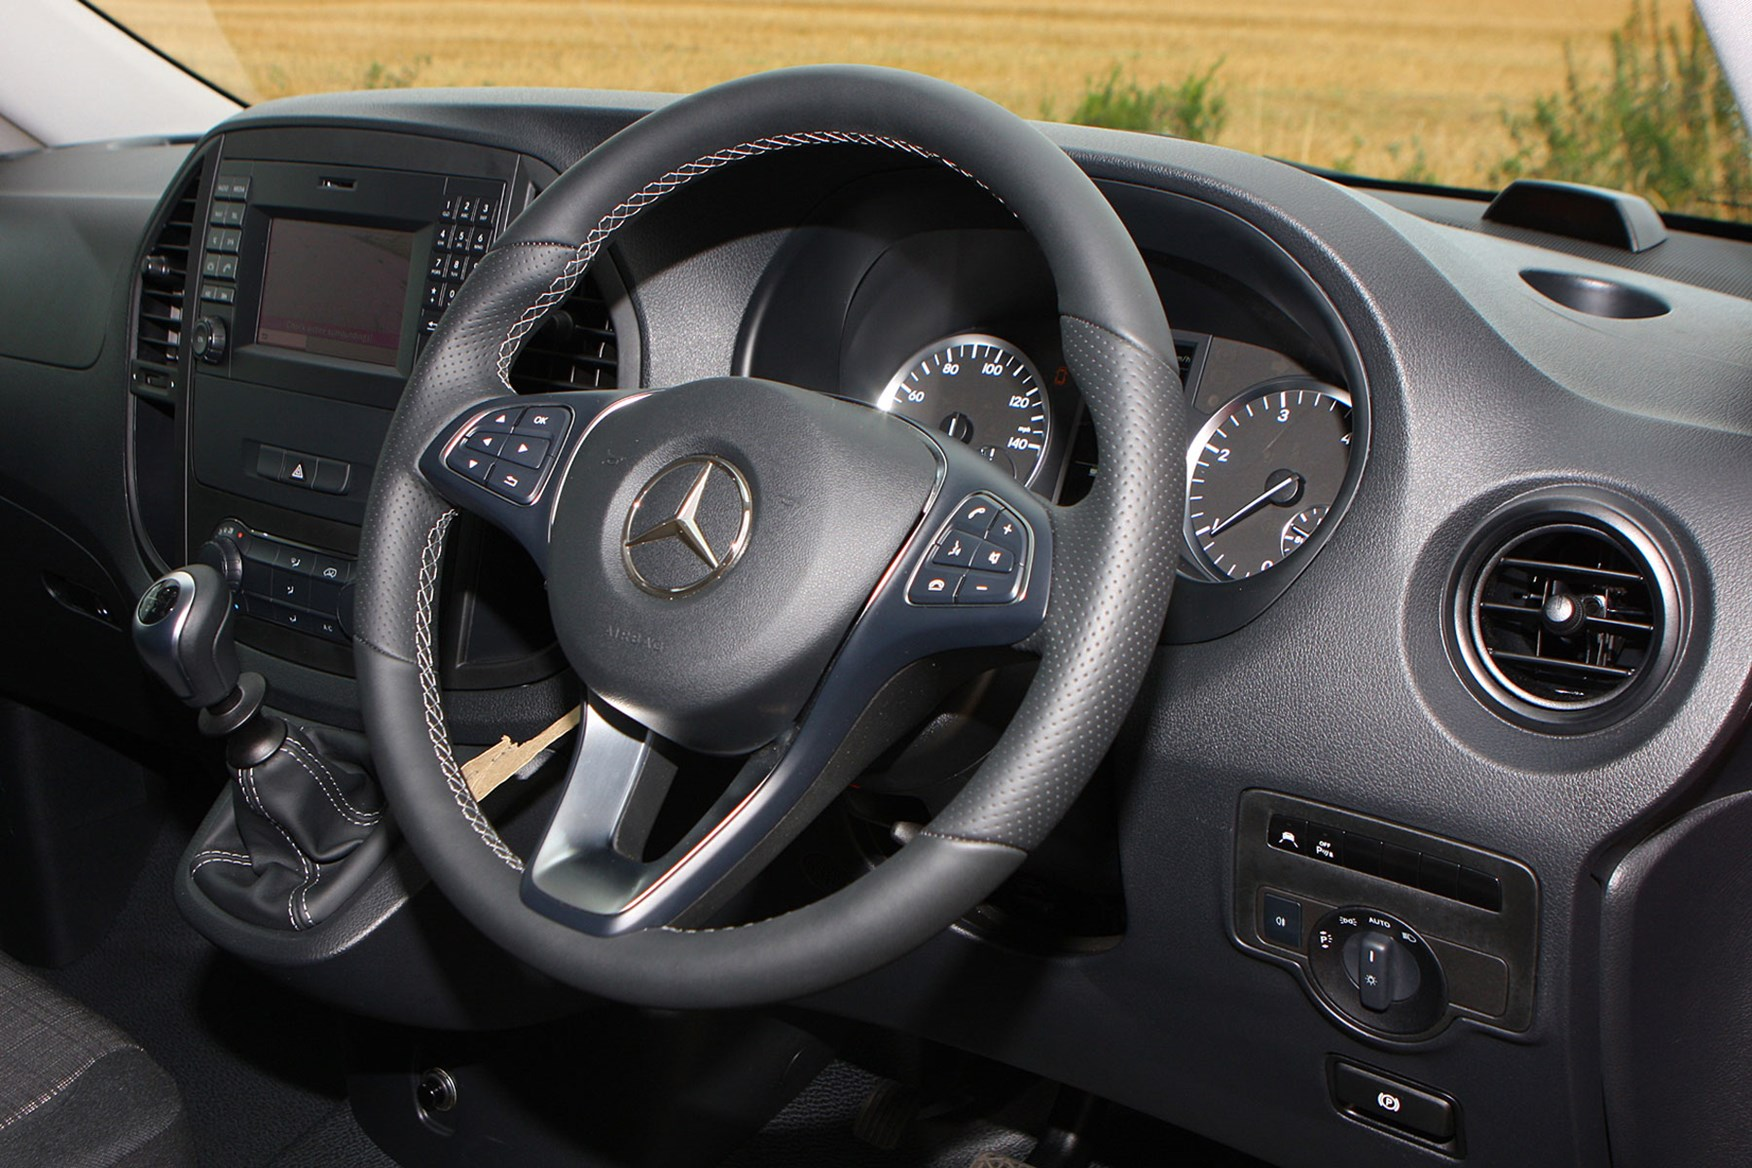 Mercedes-Benz Vito 111CDi Long review - cab interior, steering wheel, dashboard